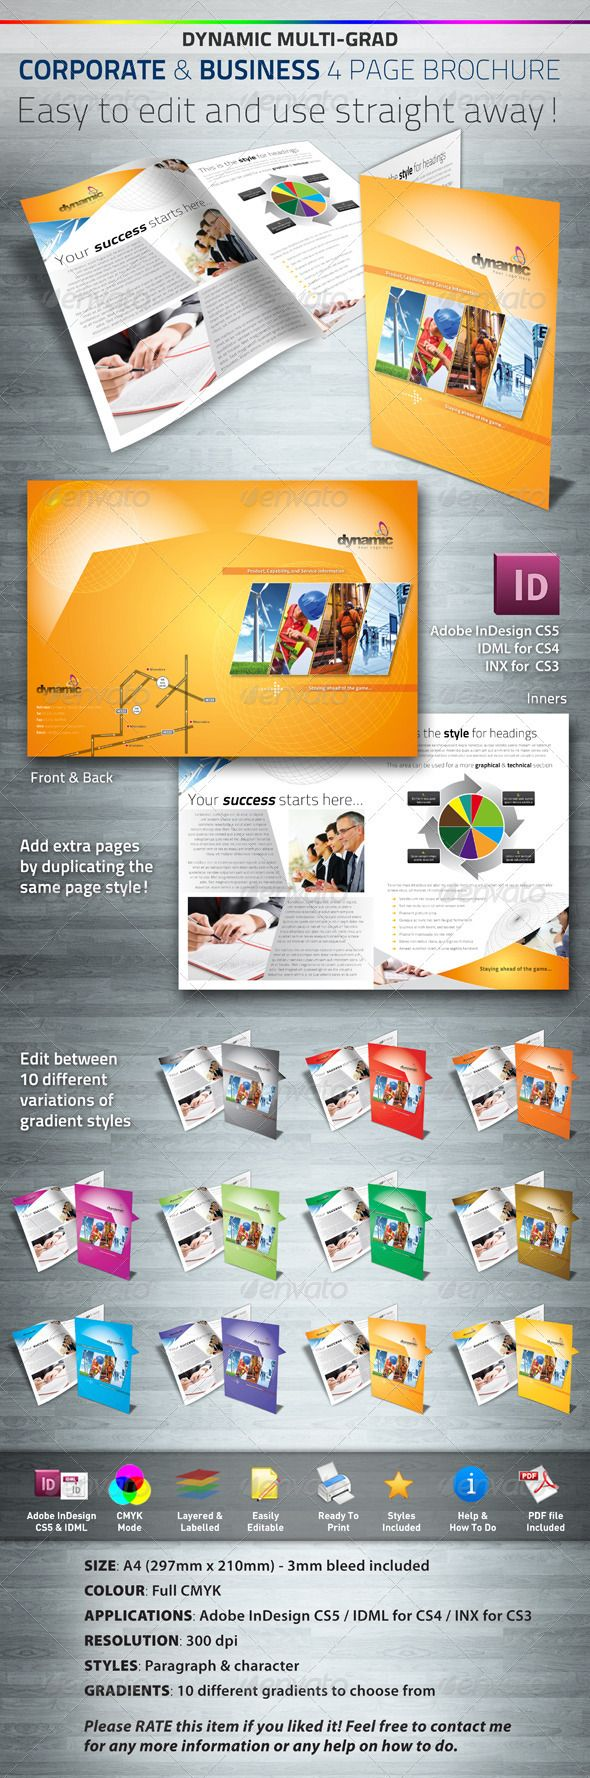 98 best Print Templates images on Pinterest | Print templates, Flyer ...